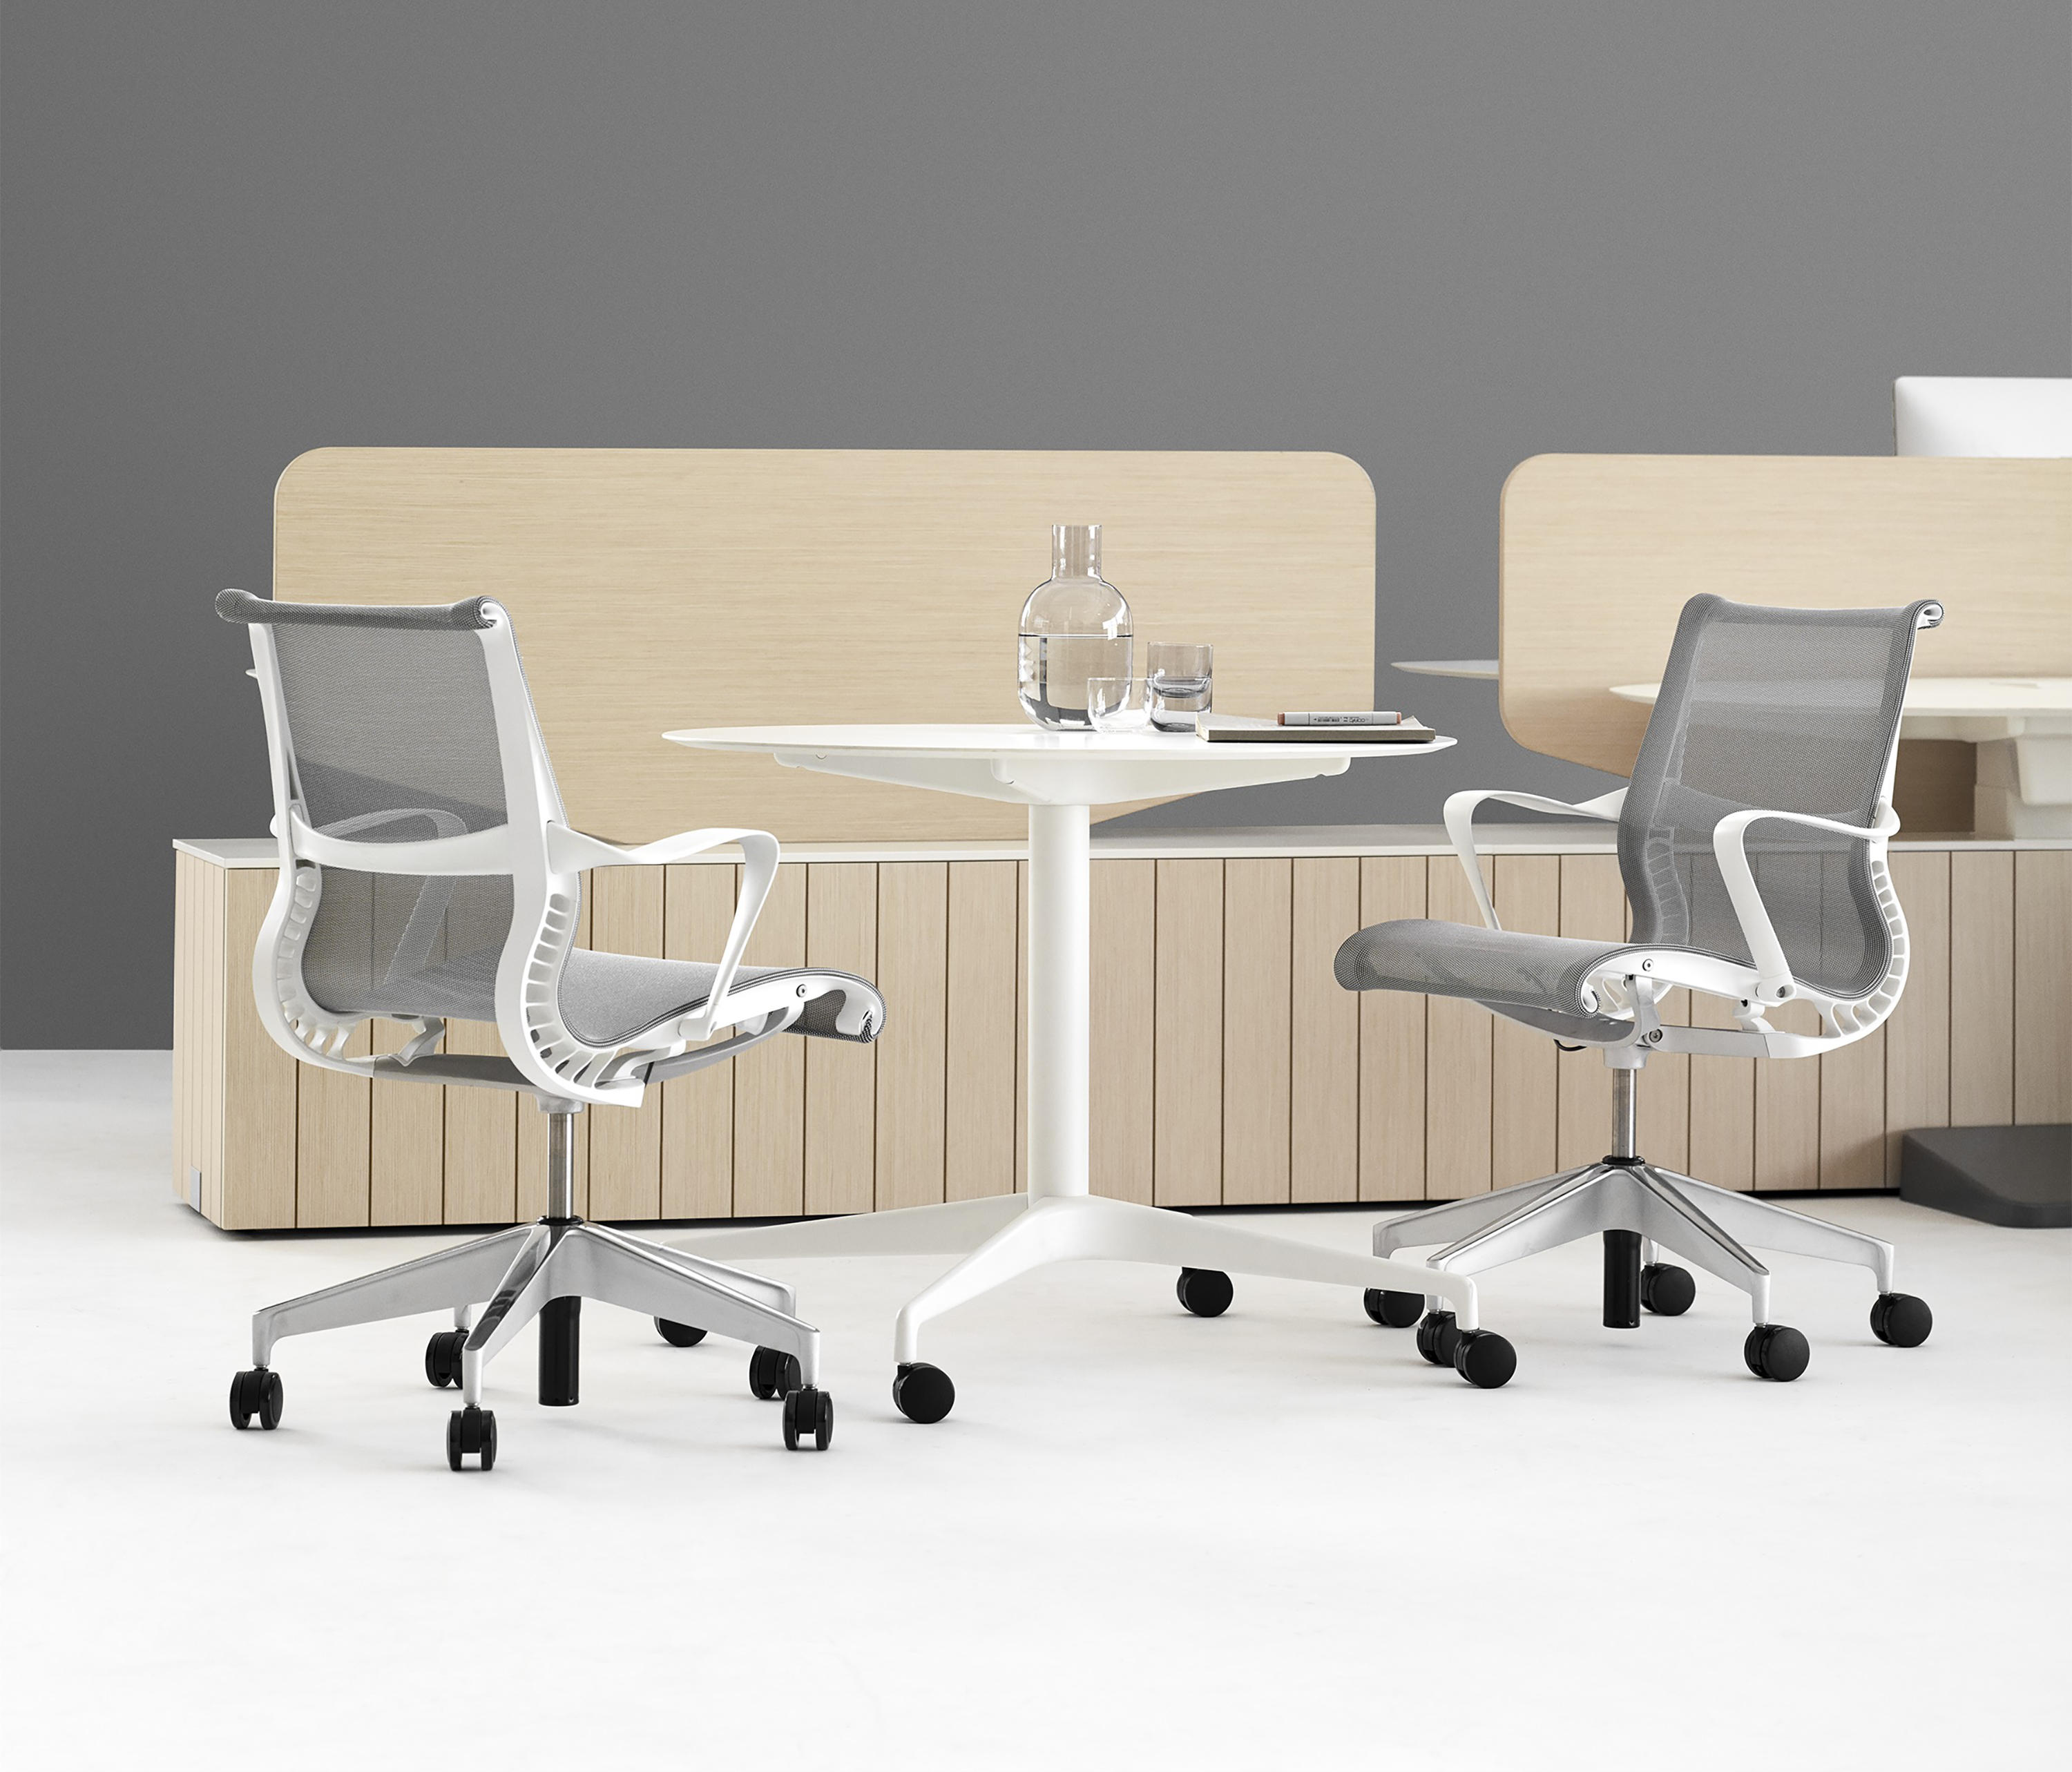 setu chair  task chairs from herman miller  architonic - setu chair by herman miller